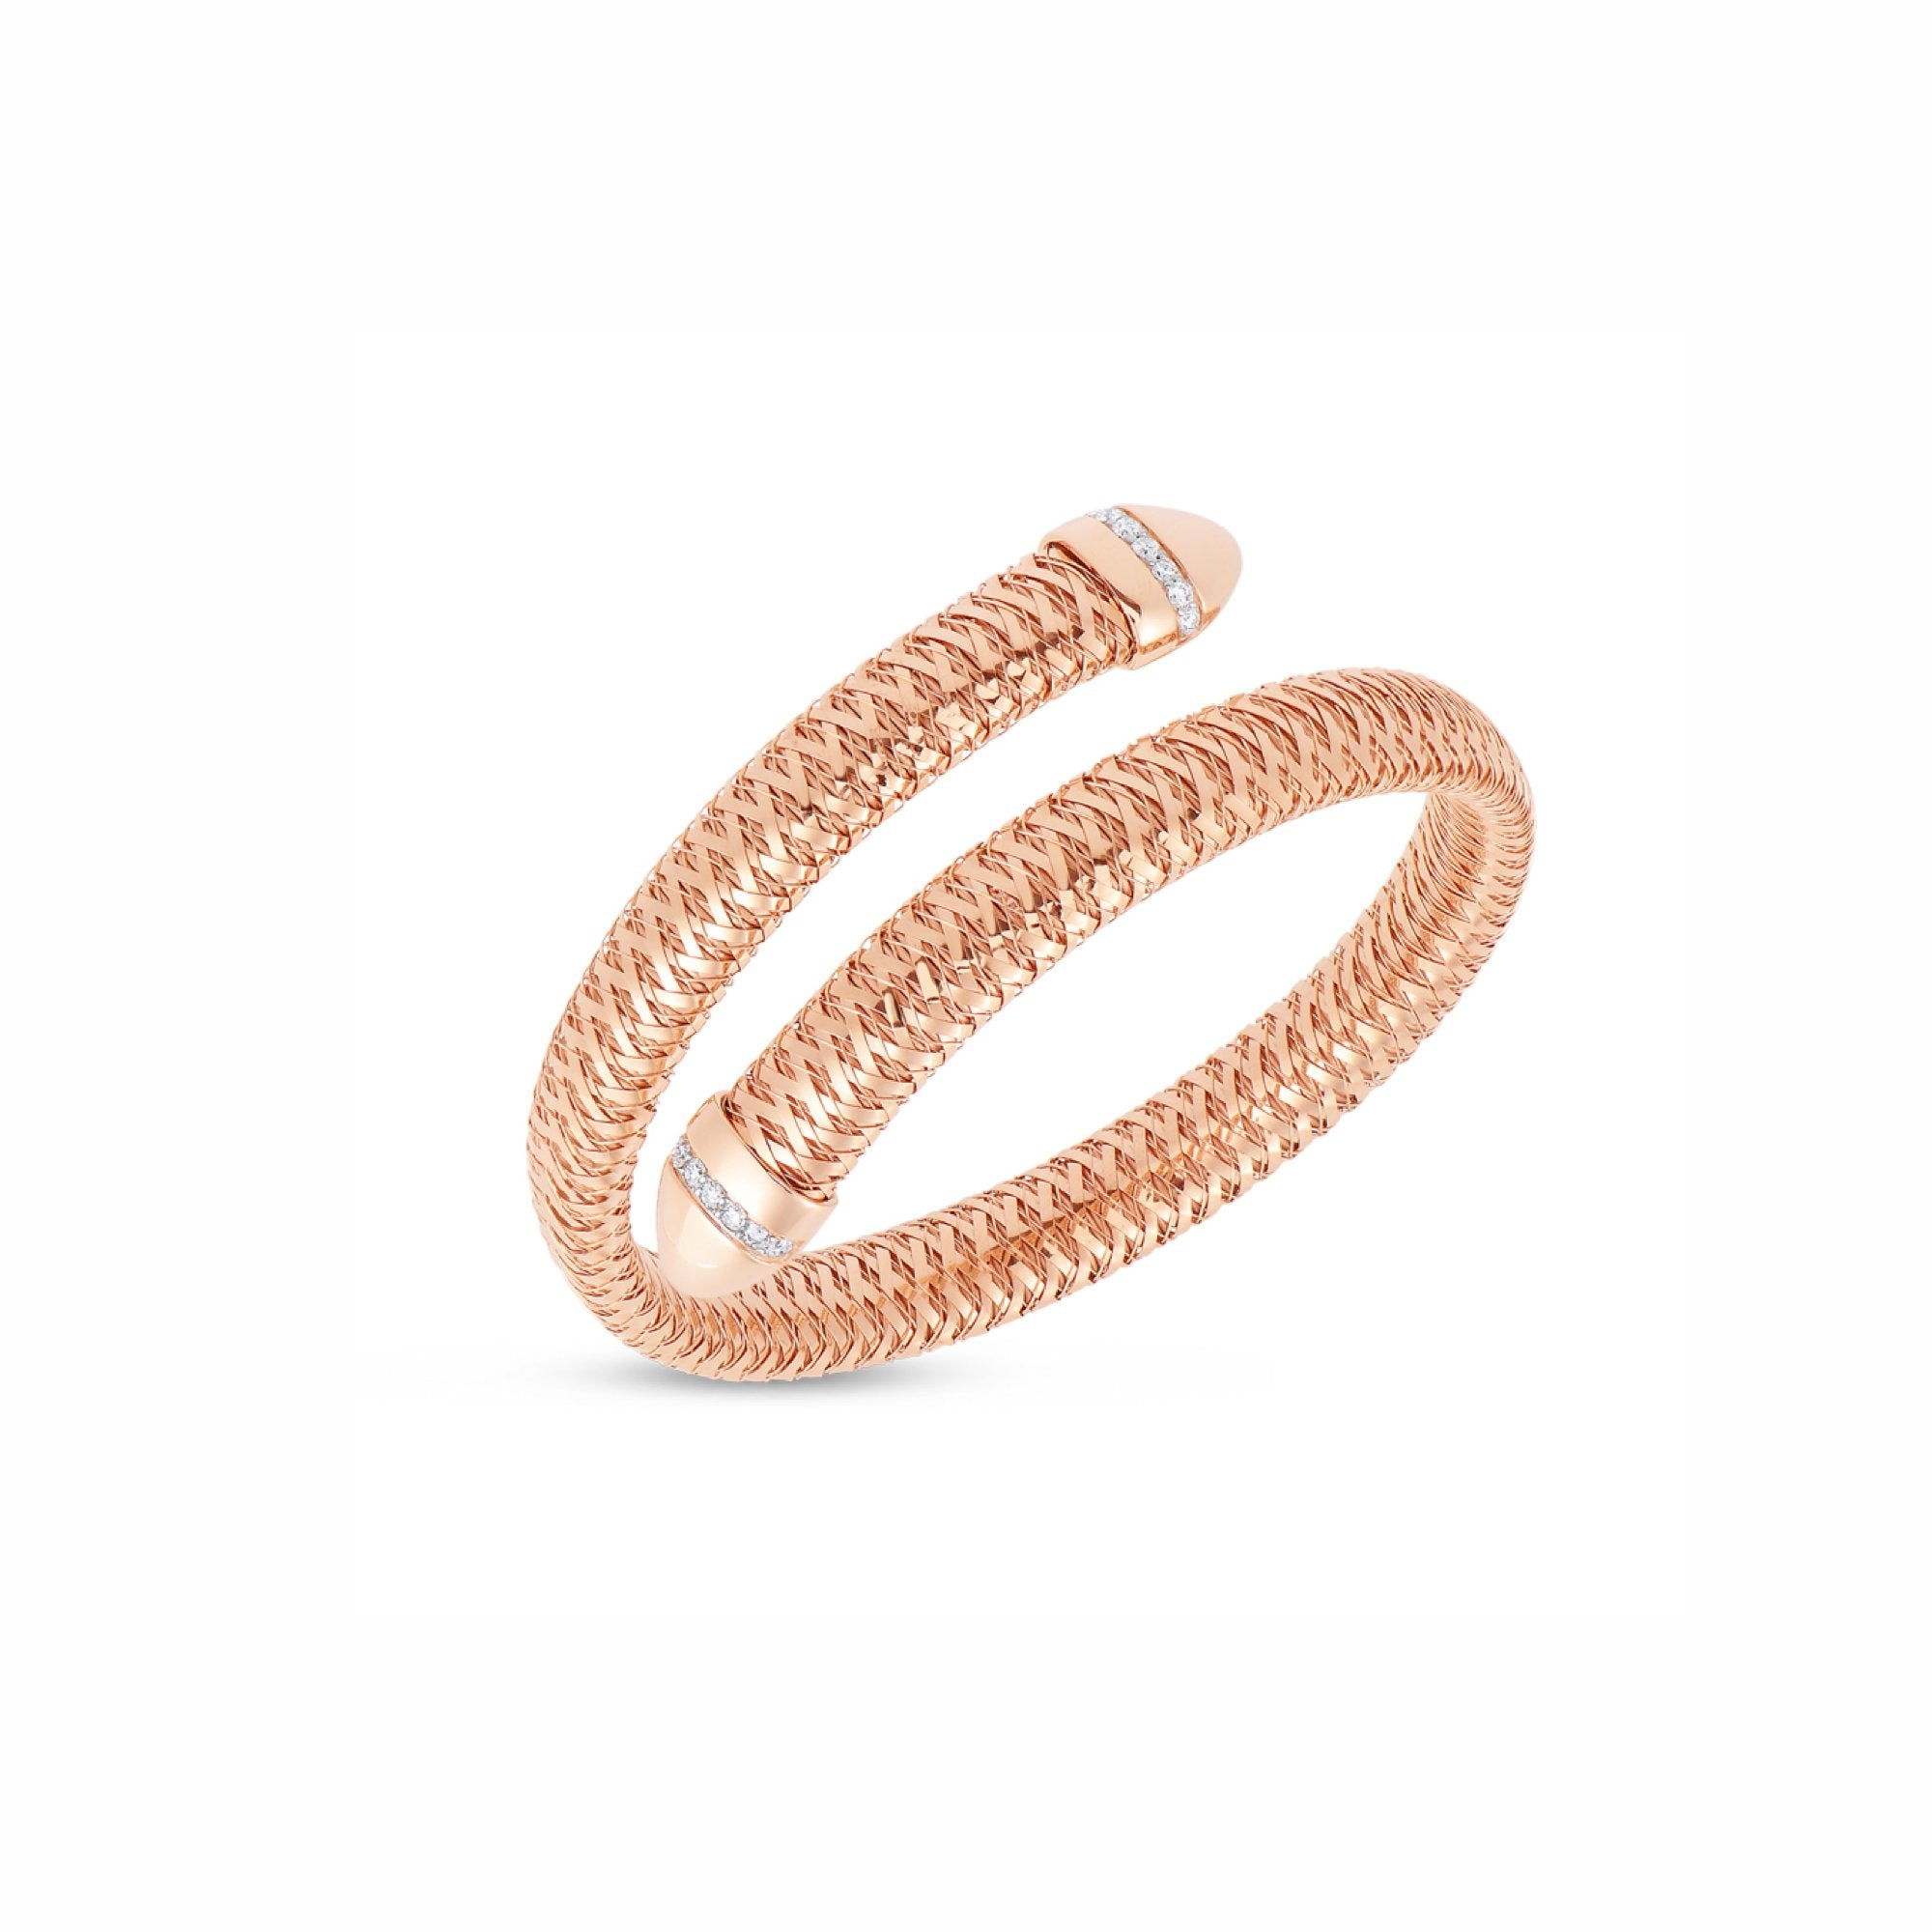 18K Rose Gold Flexible Snake Cuff With Diamonds